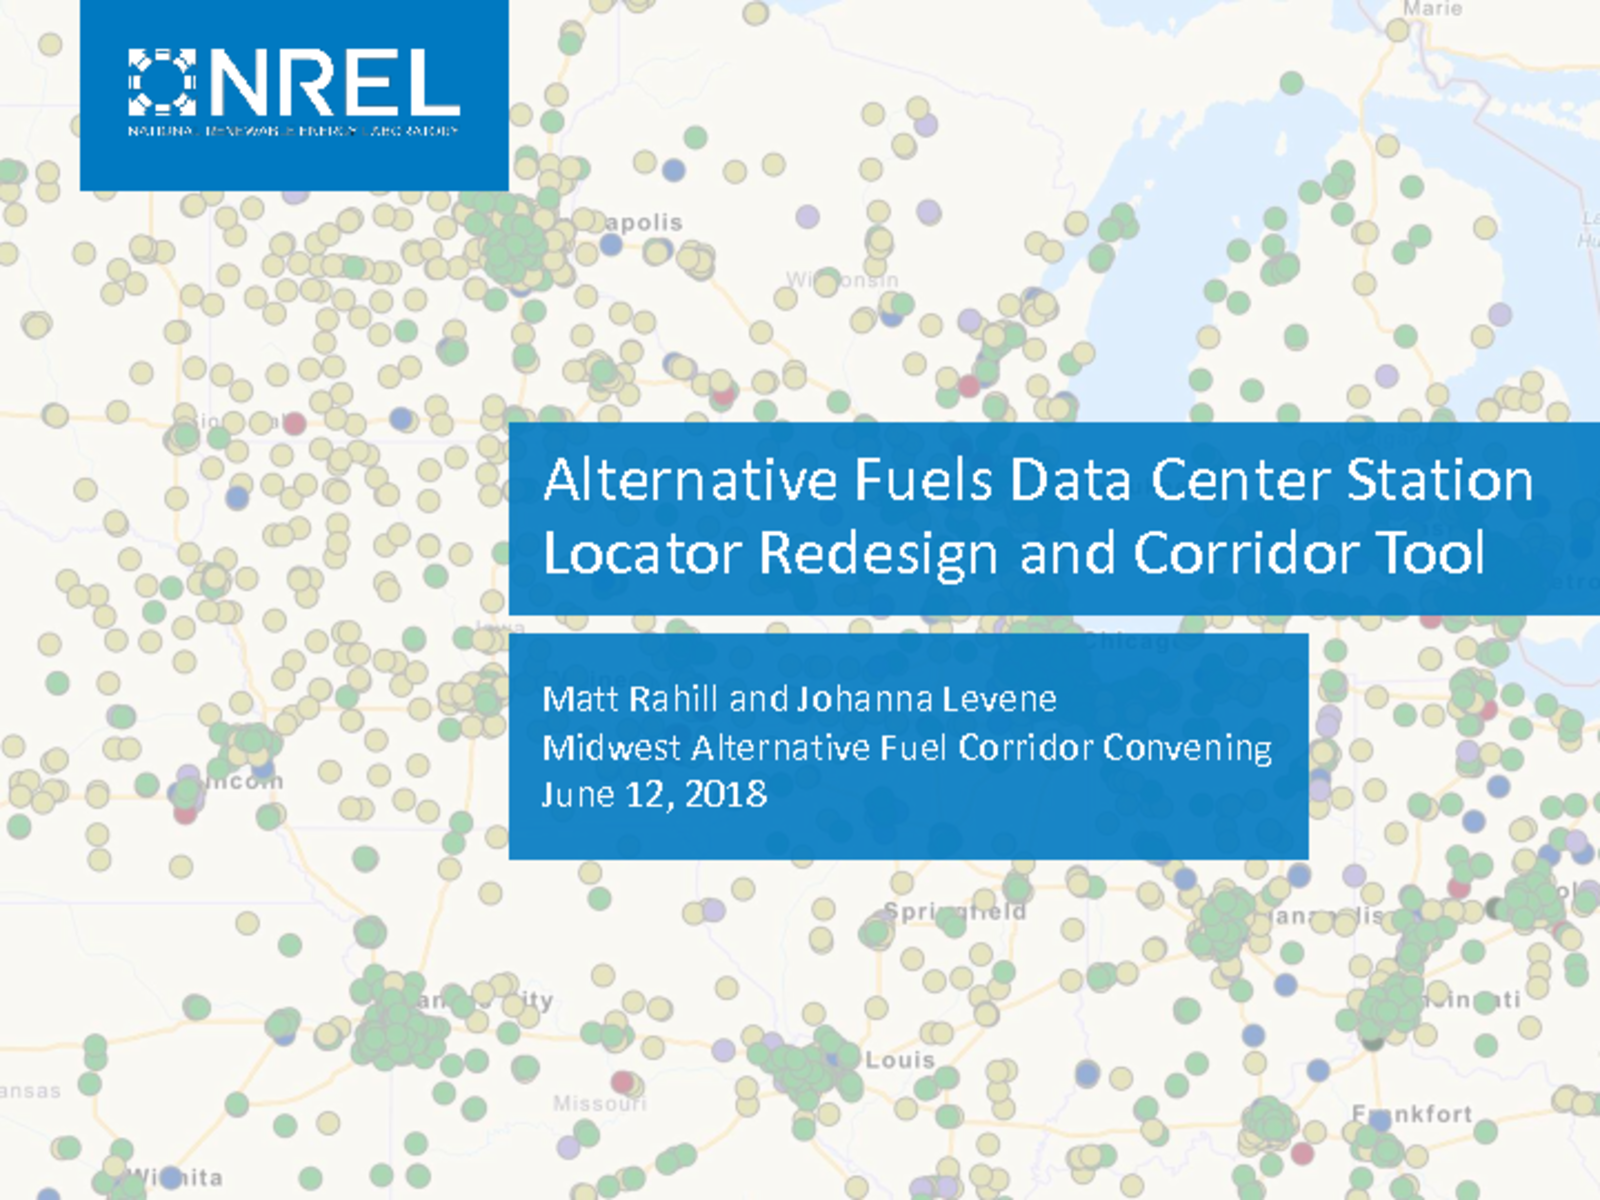 thumbnail of AFDC Stations and Corridor Tool